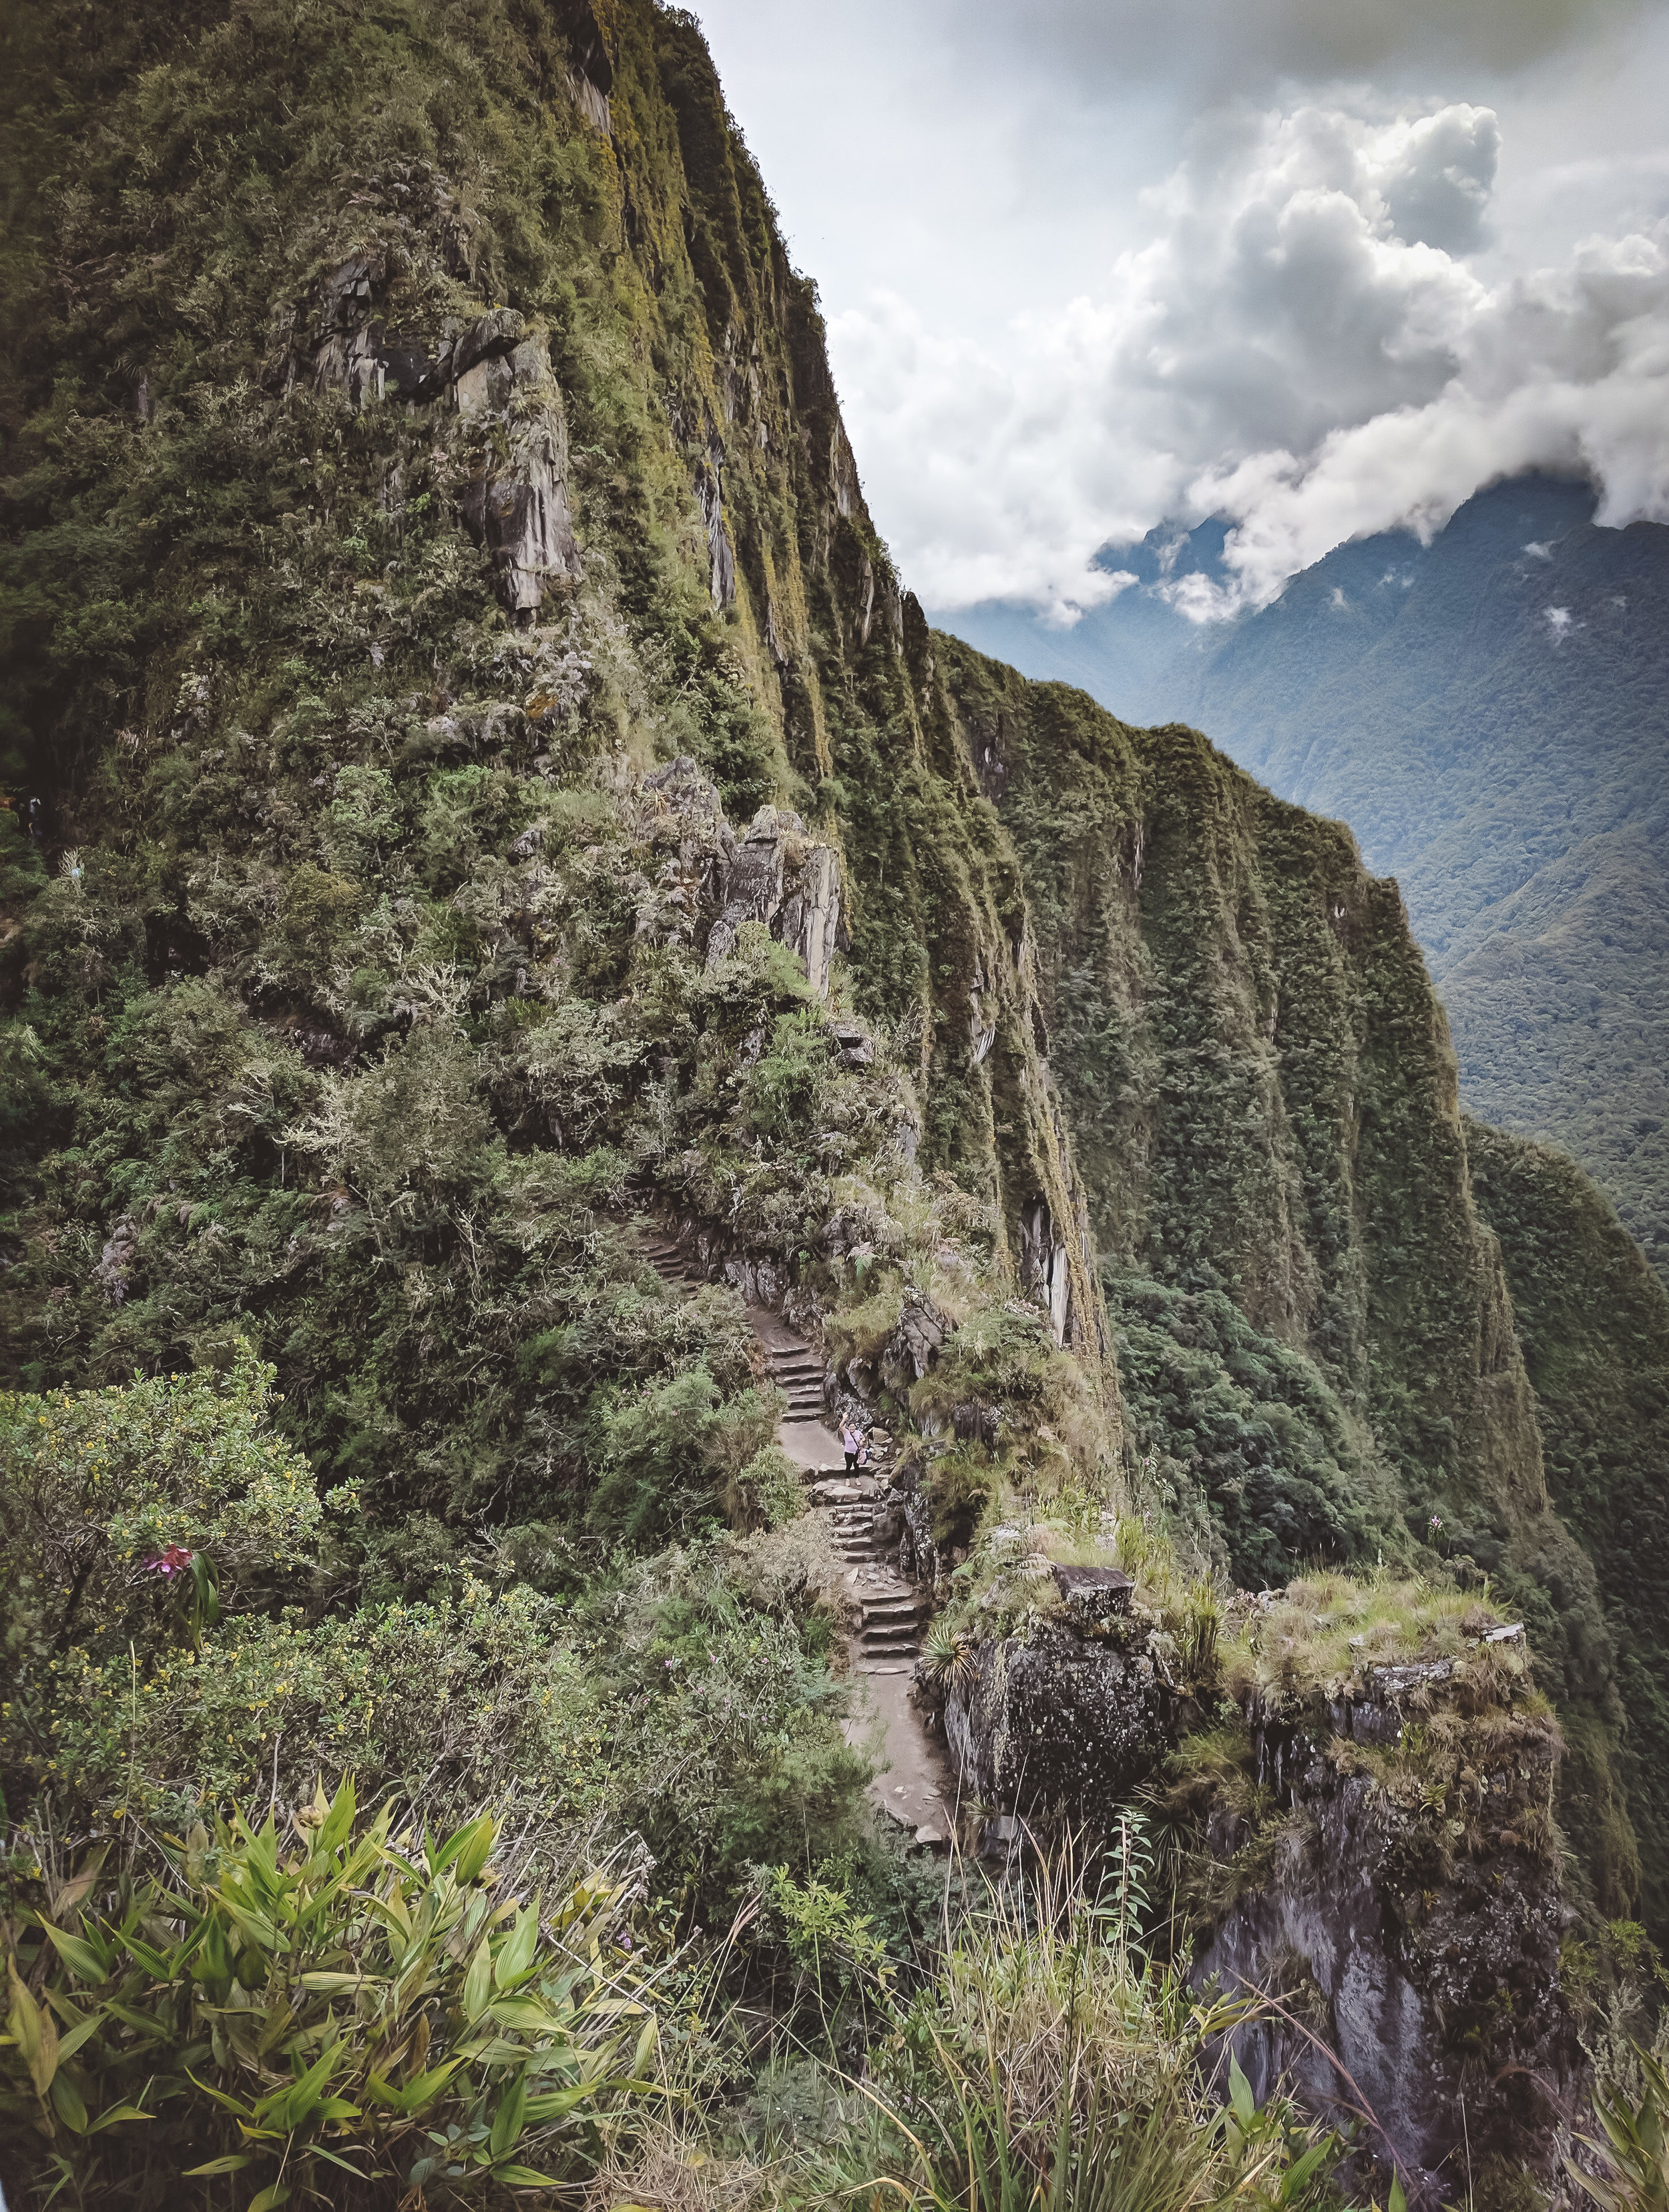 If you look closely you can see Zet on Huayna Picchu